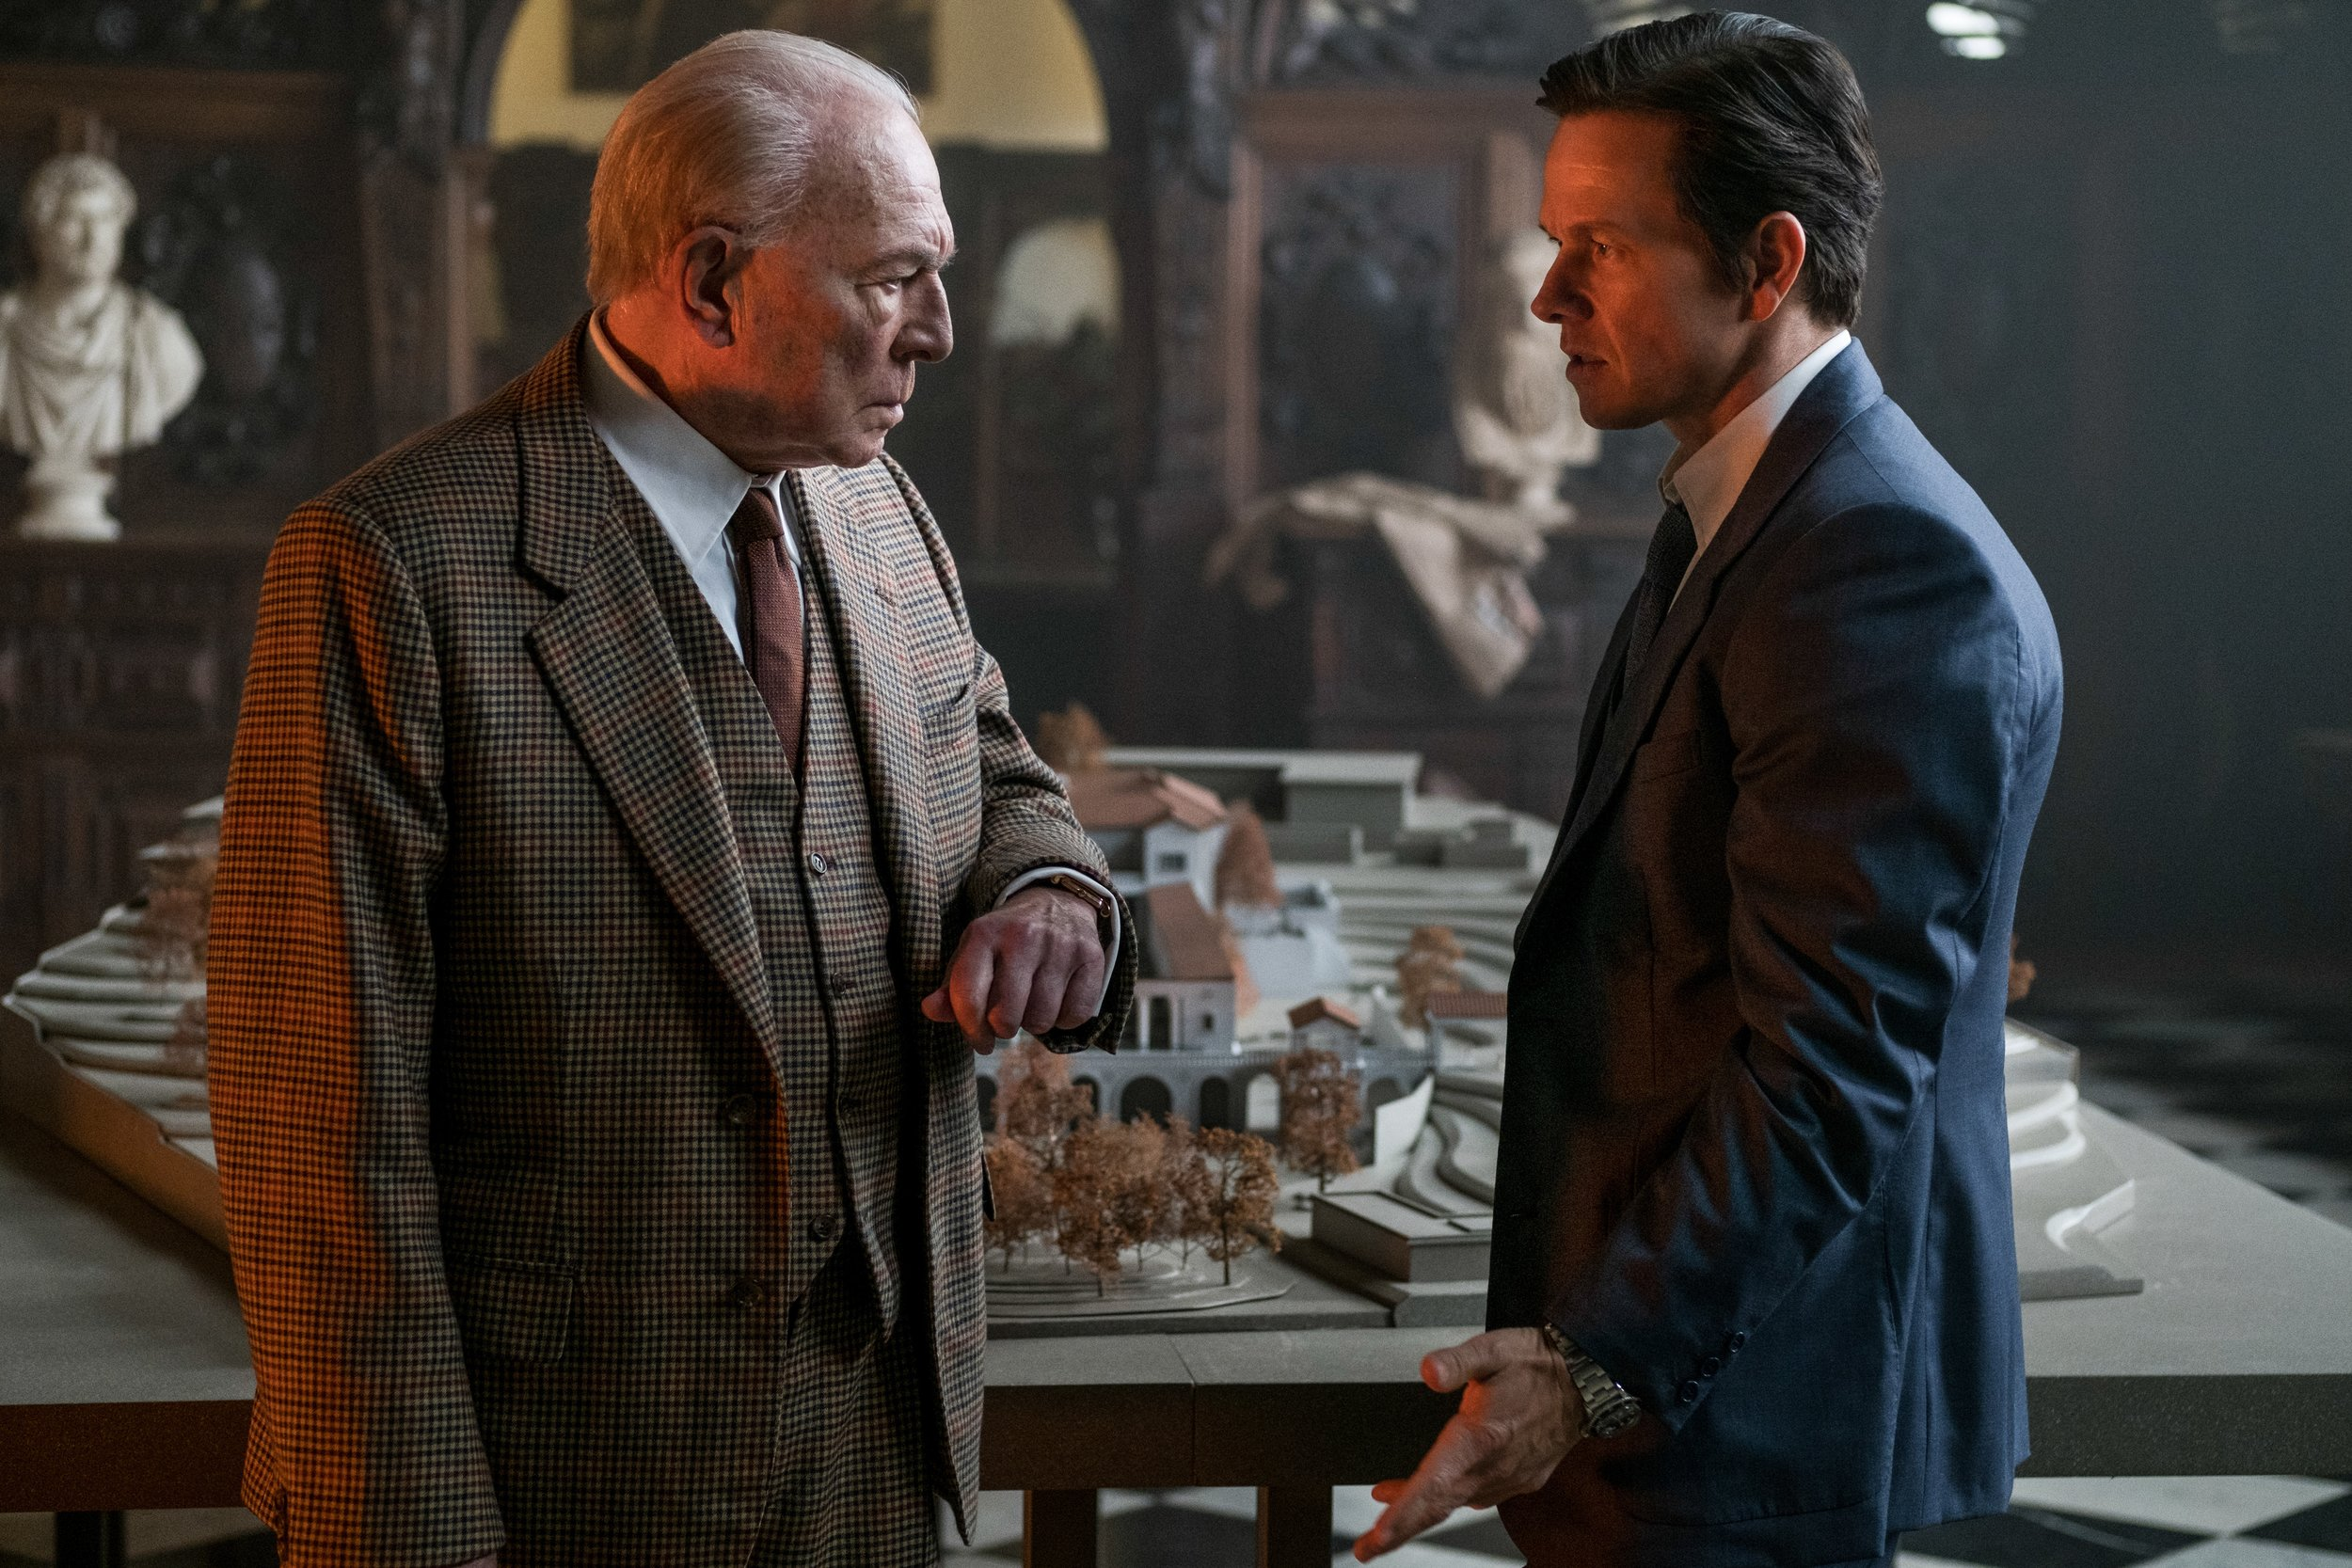 Christopher Plummer, having discovered what Mark Wahlberg was paid for the reshoot